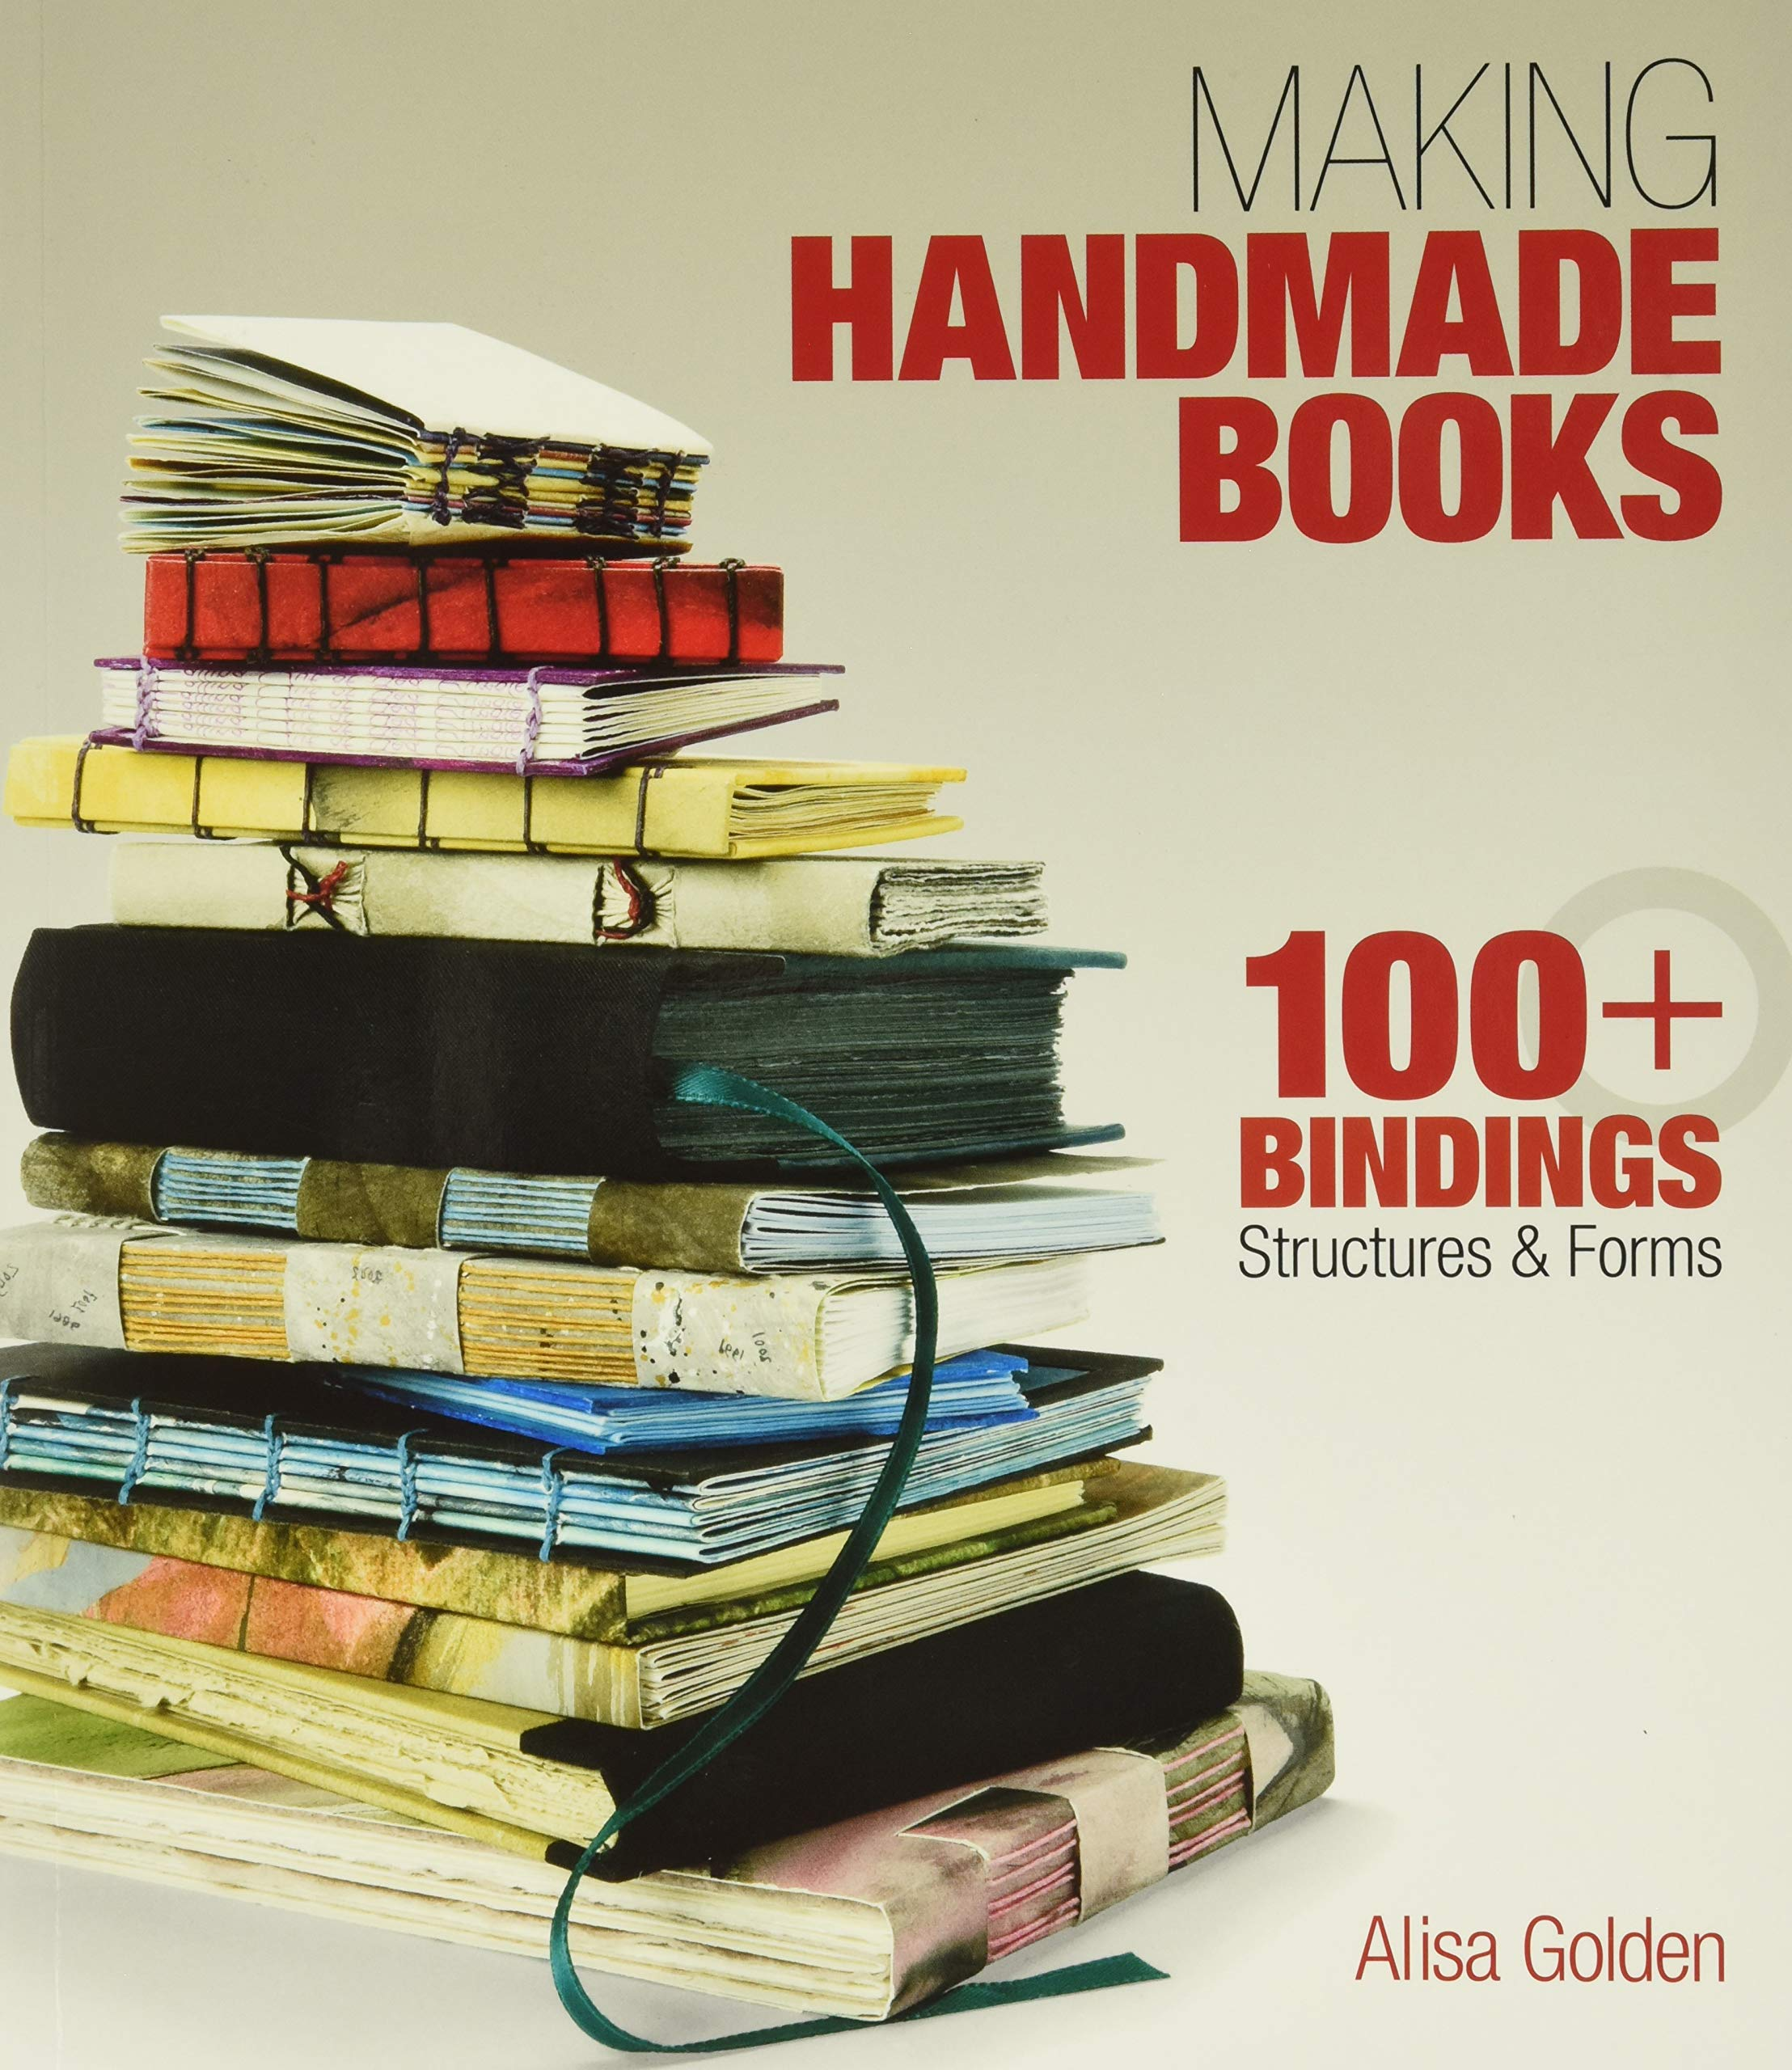 Book Binding Press ~ Book Press ~ Make Your Own Books ~ Journal Making ~ Paper Craft Tools ~ Stamping Art Tools ~Scrapbooking Tools~Crafters